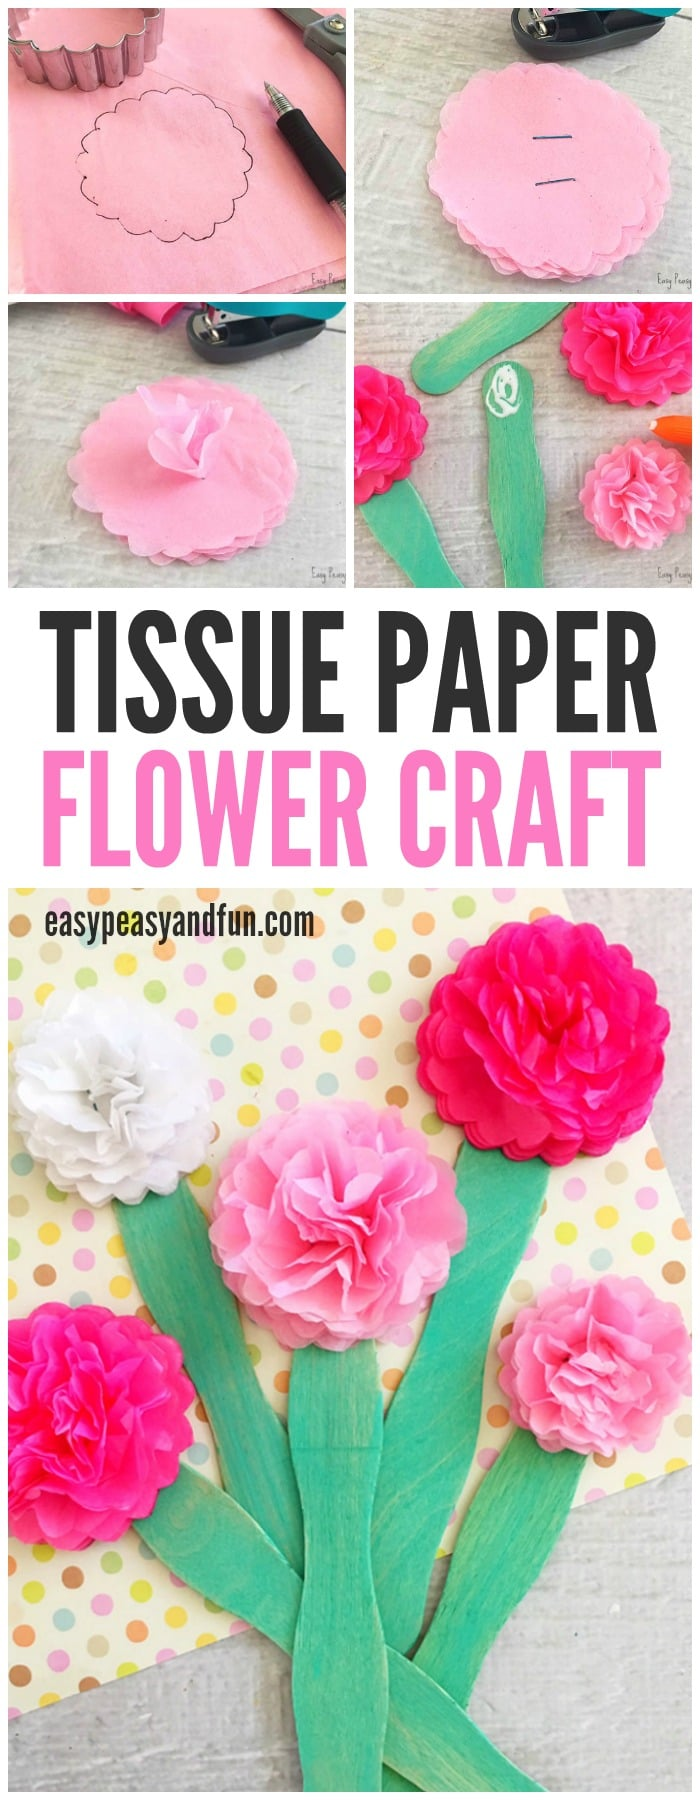 Colorful Tissue Paper Flower Craft For Kids To Make